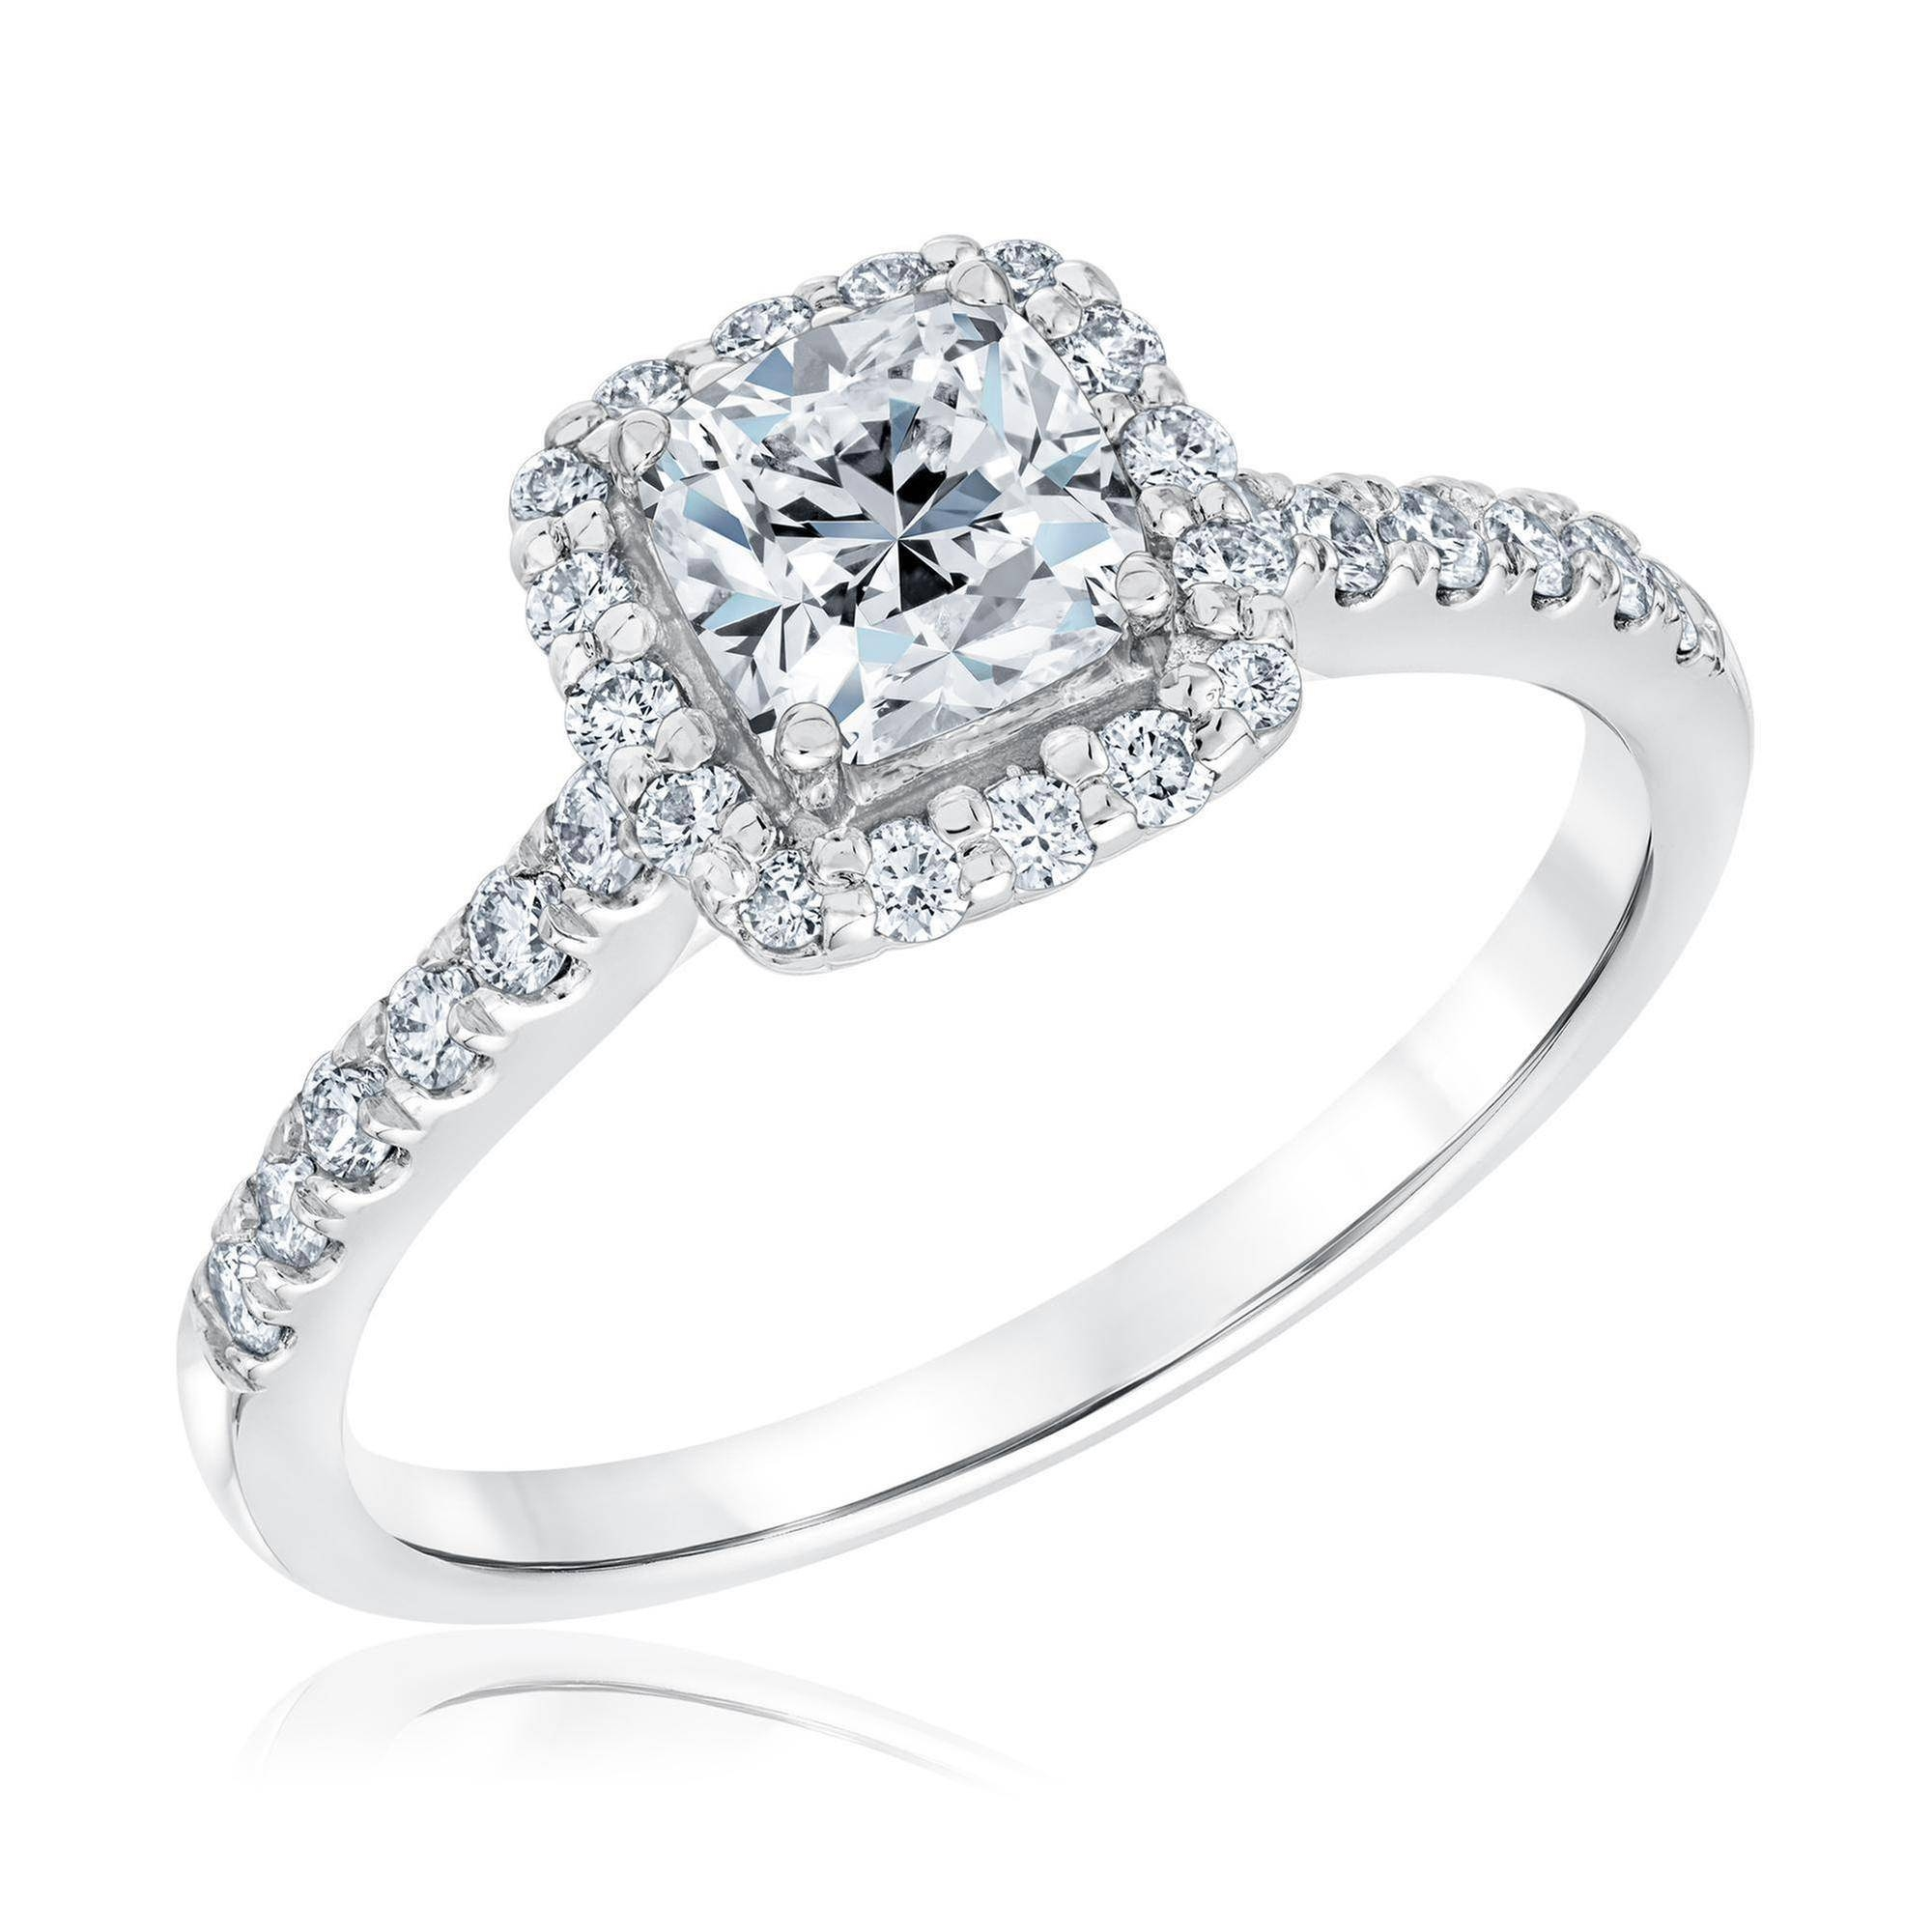 Rings Page 1 | Reeds Jewelers Pertaining To Most Up To Date Anniversary Rings For Her (Gallery 23 of 25)